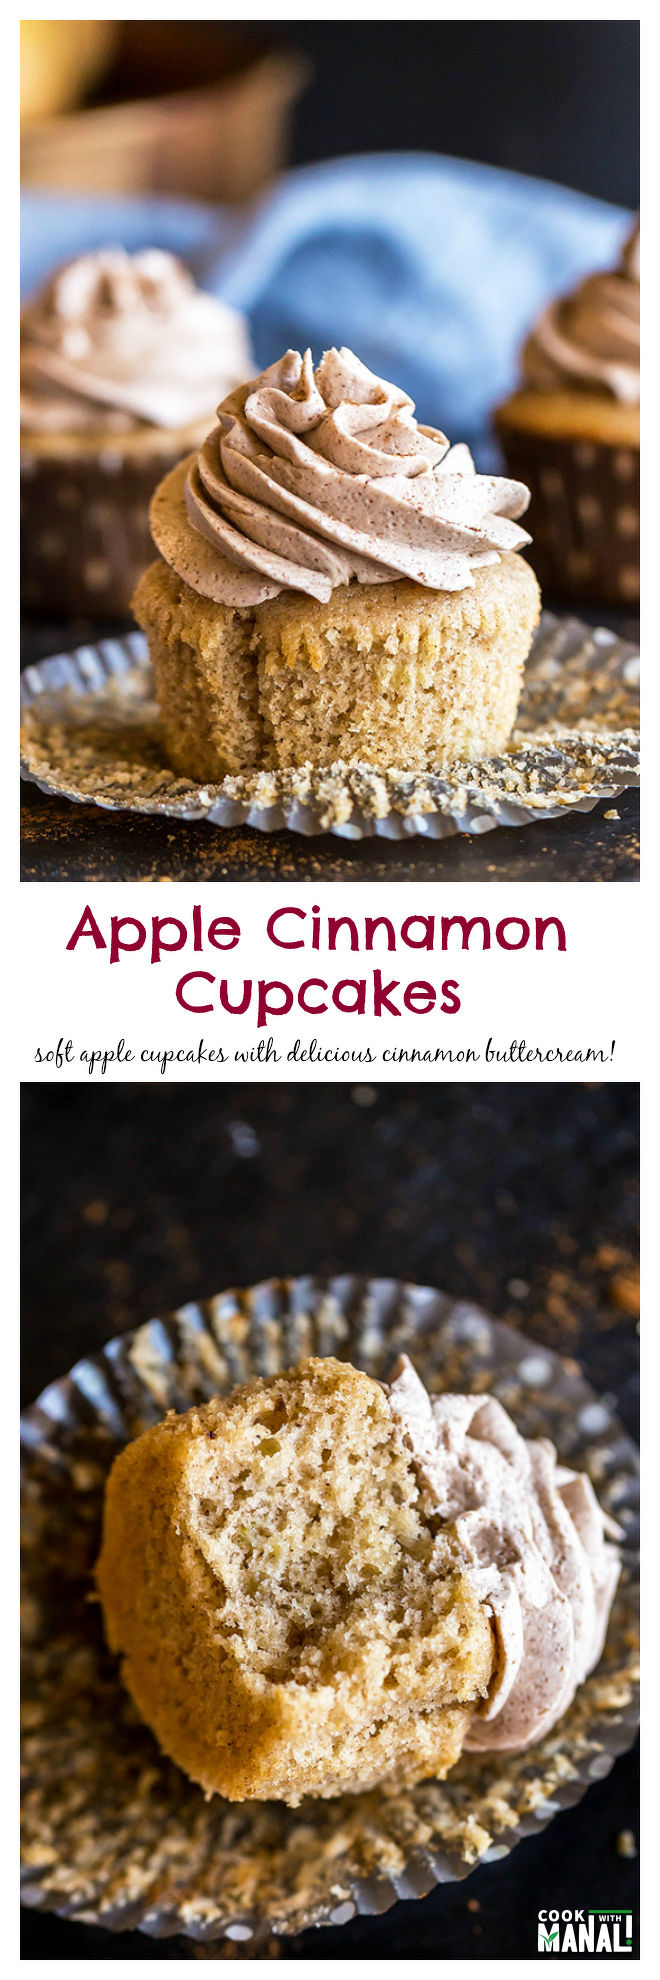 apple-cinnamon-cupcakes-collage